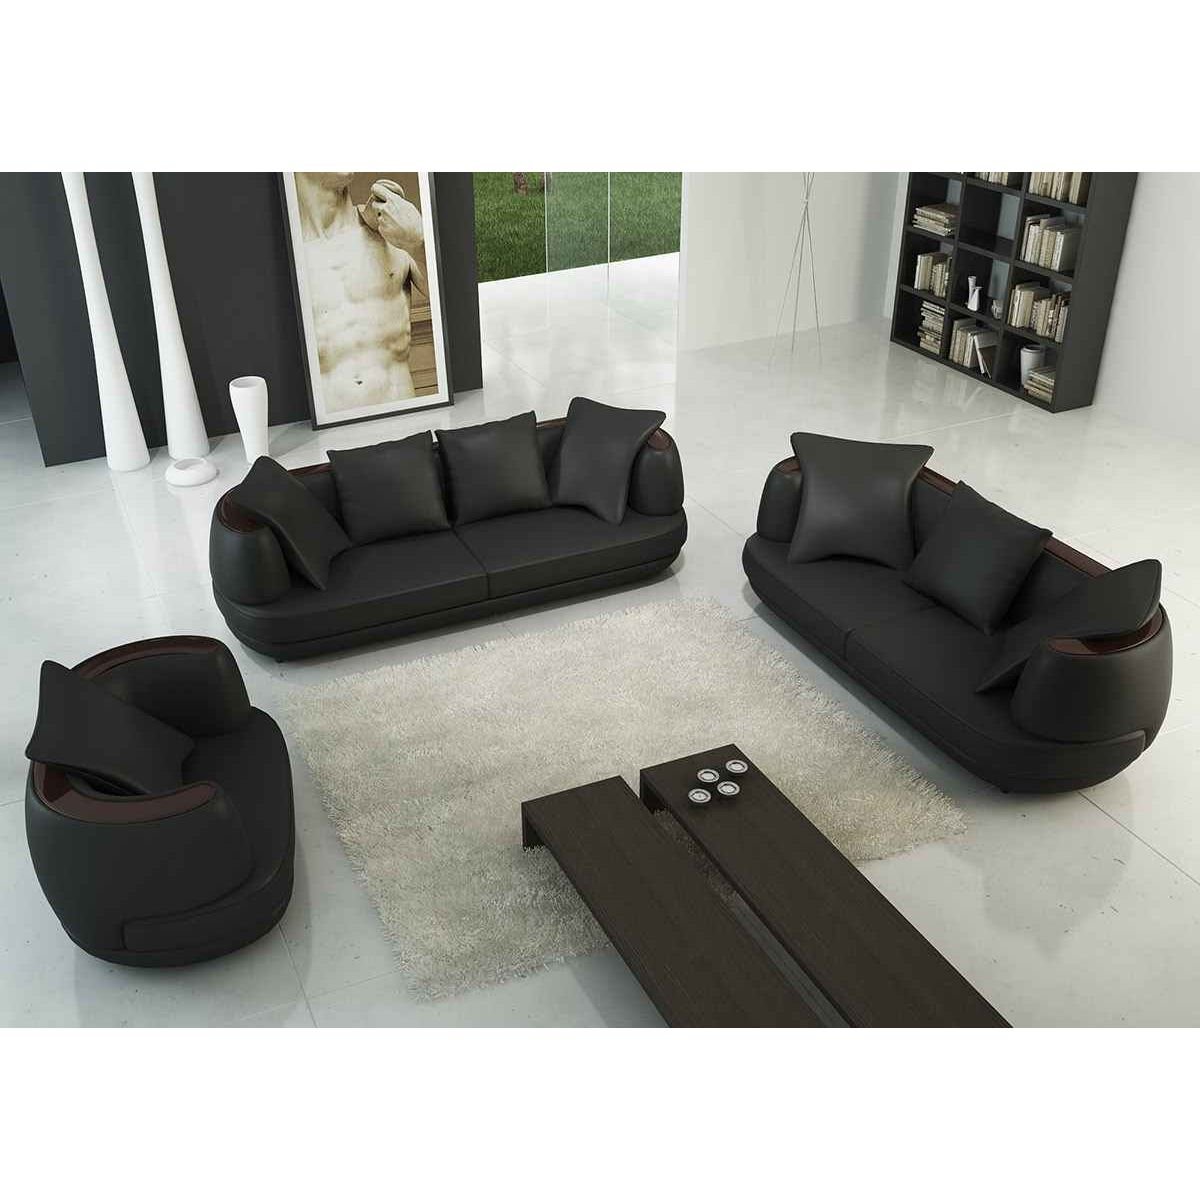 Deco in paris ensemble canape 3 2 1 places noir en cuir for Canape 2 places arrondi